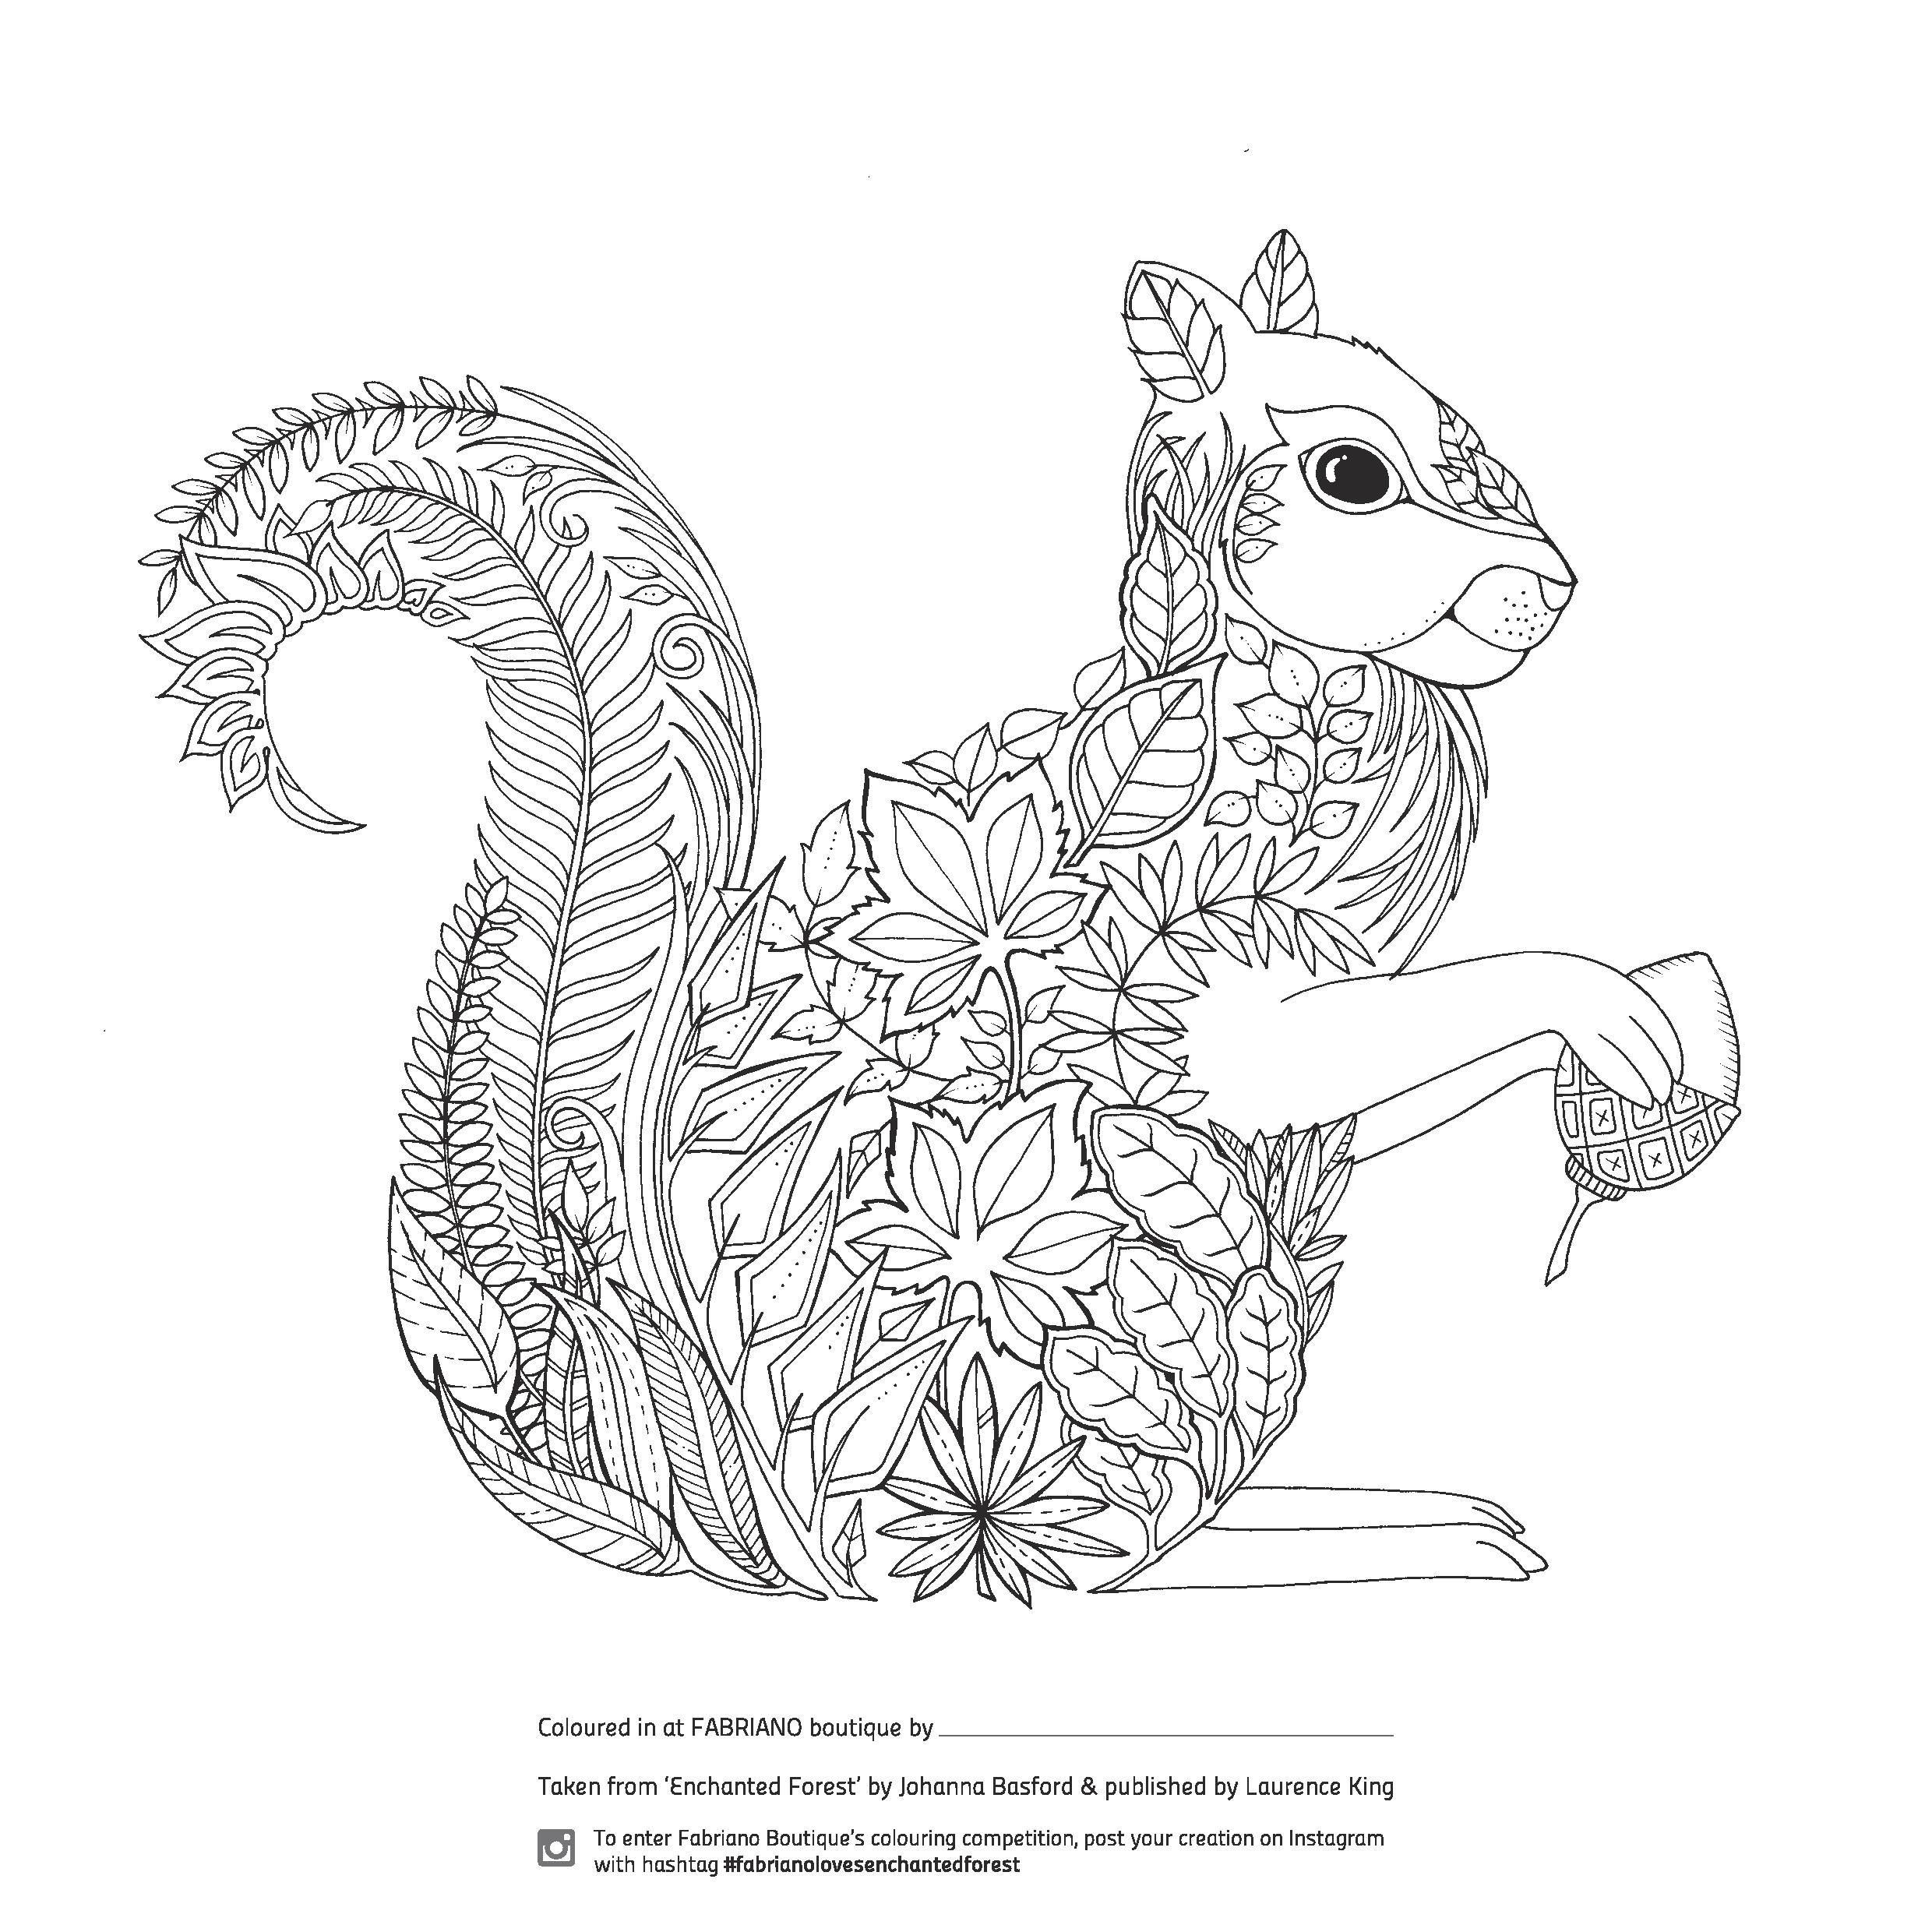 Enchanted forest coloring book website - Enchanted Forest Colouring Competition At Fabriano Boutique